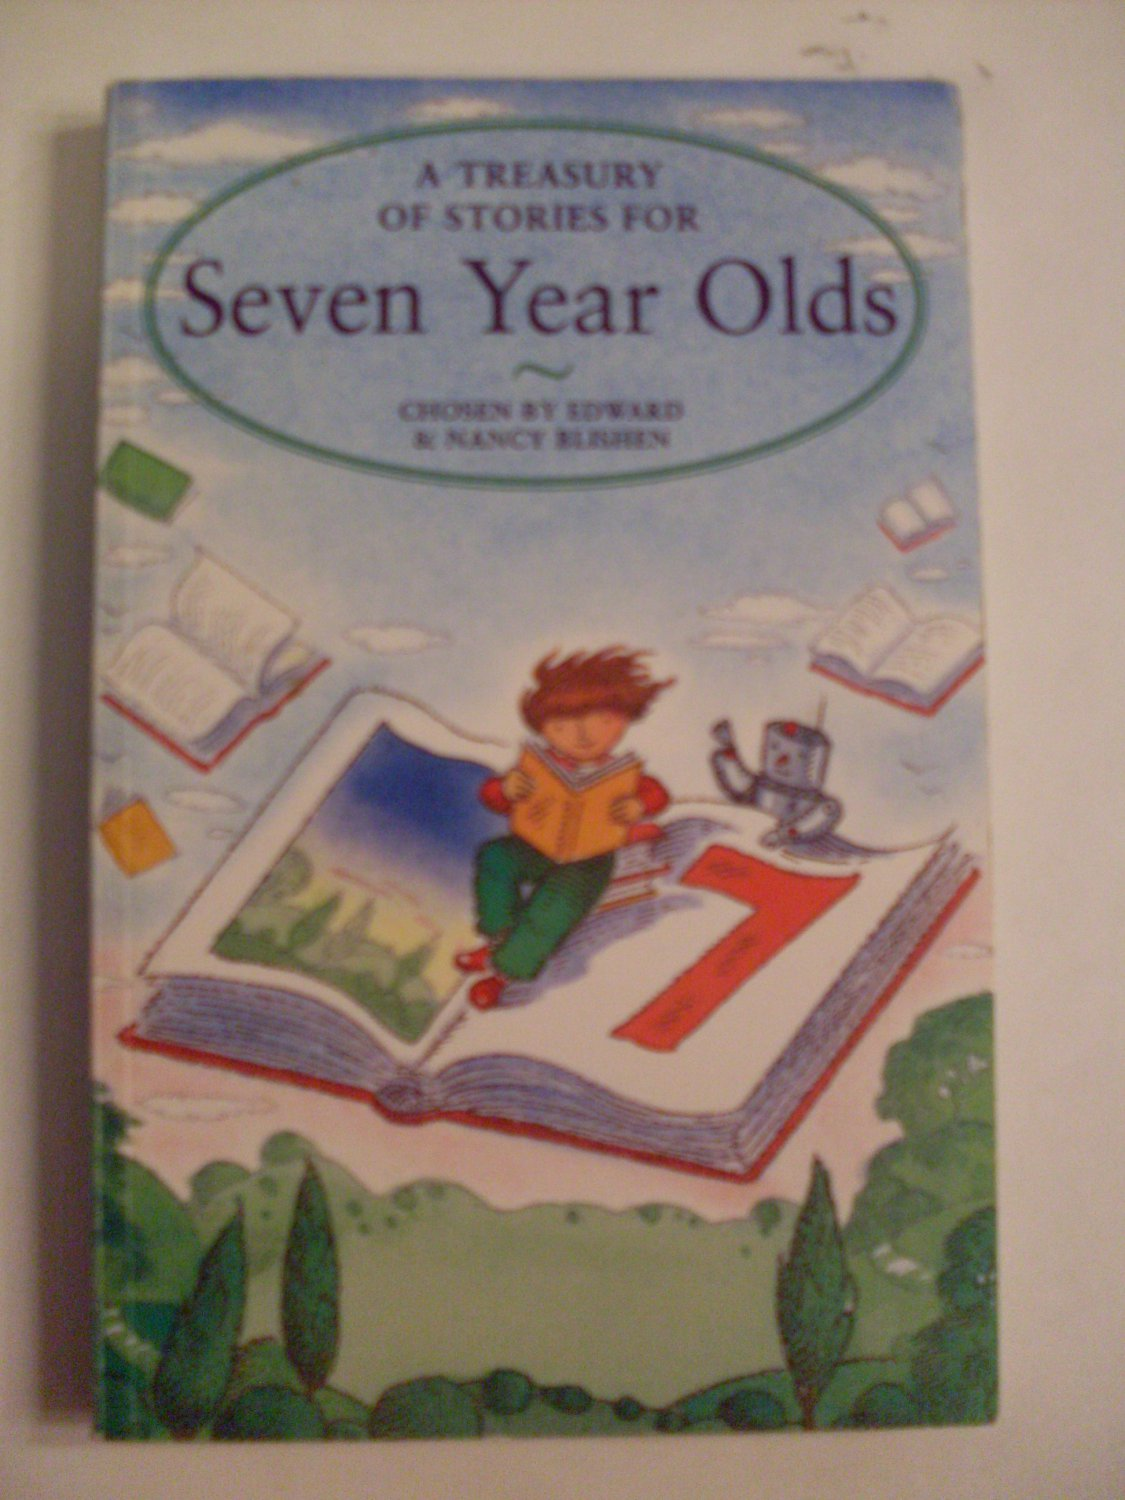 PB Book A Treasury of Stories for Seven Year Olds